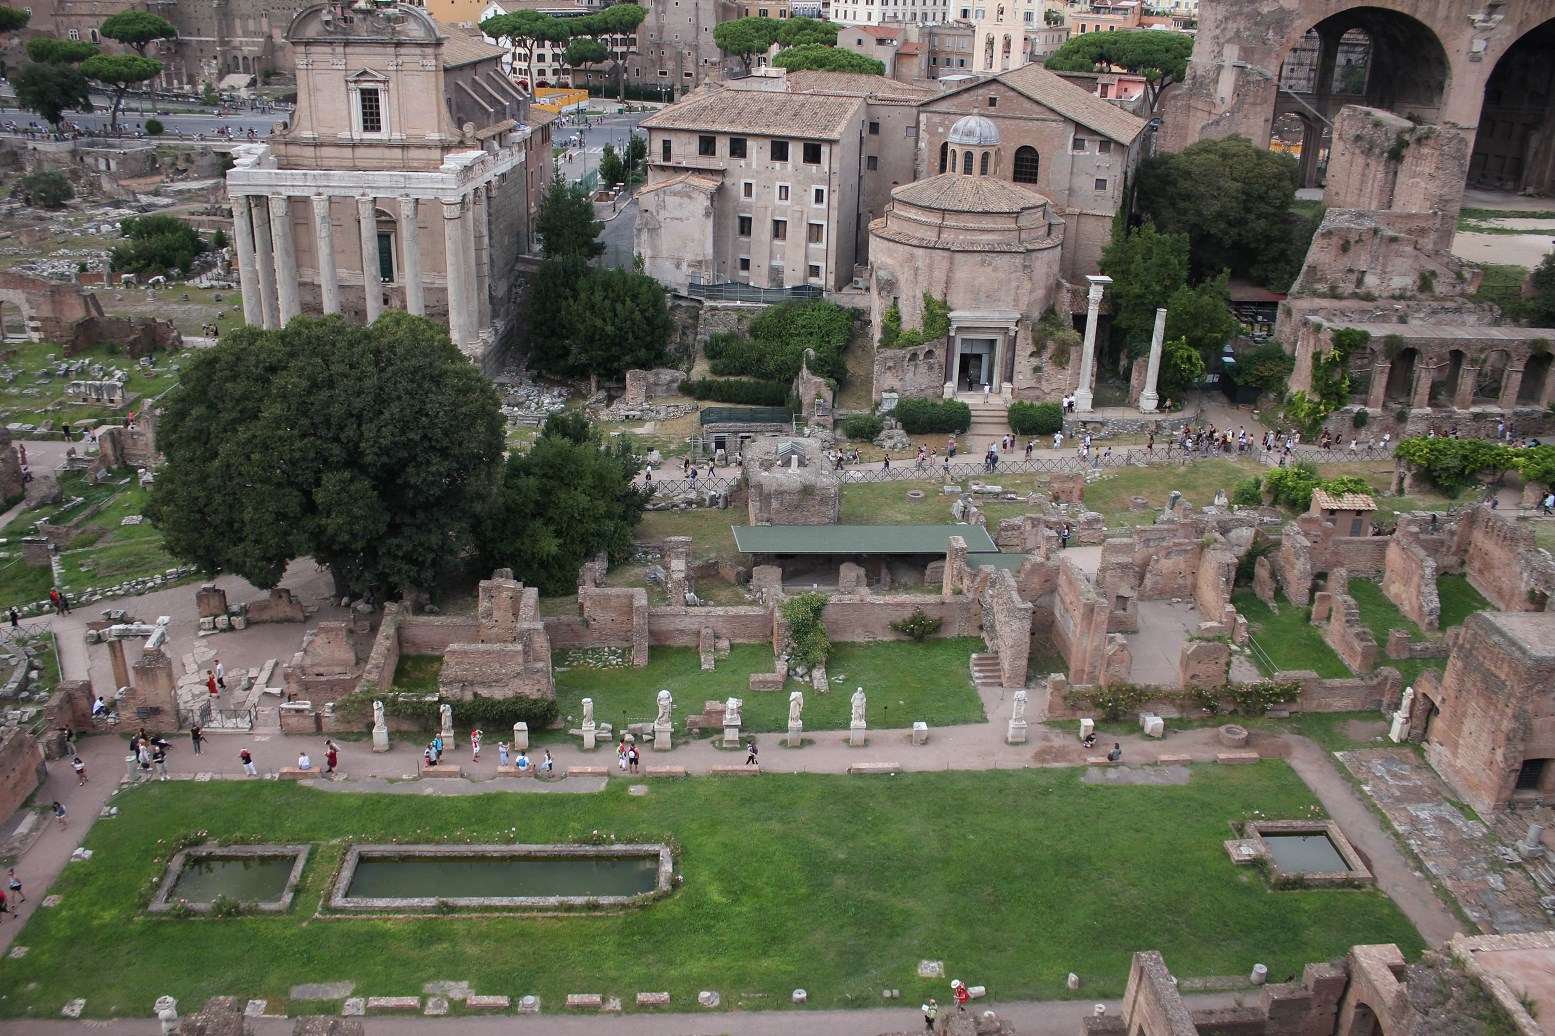 Visiting The Colosseum And Roman Forum